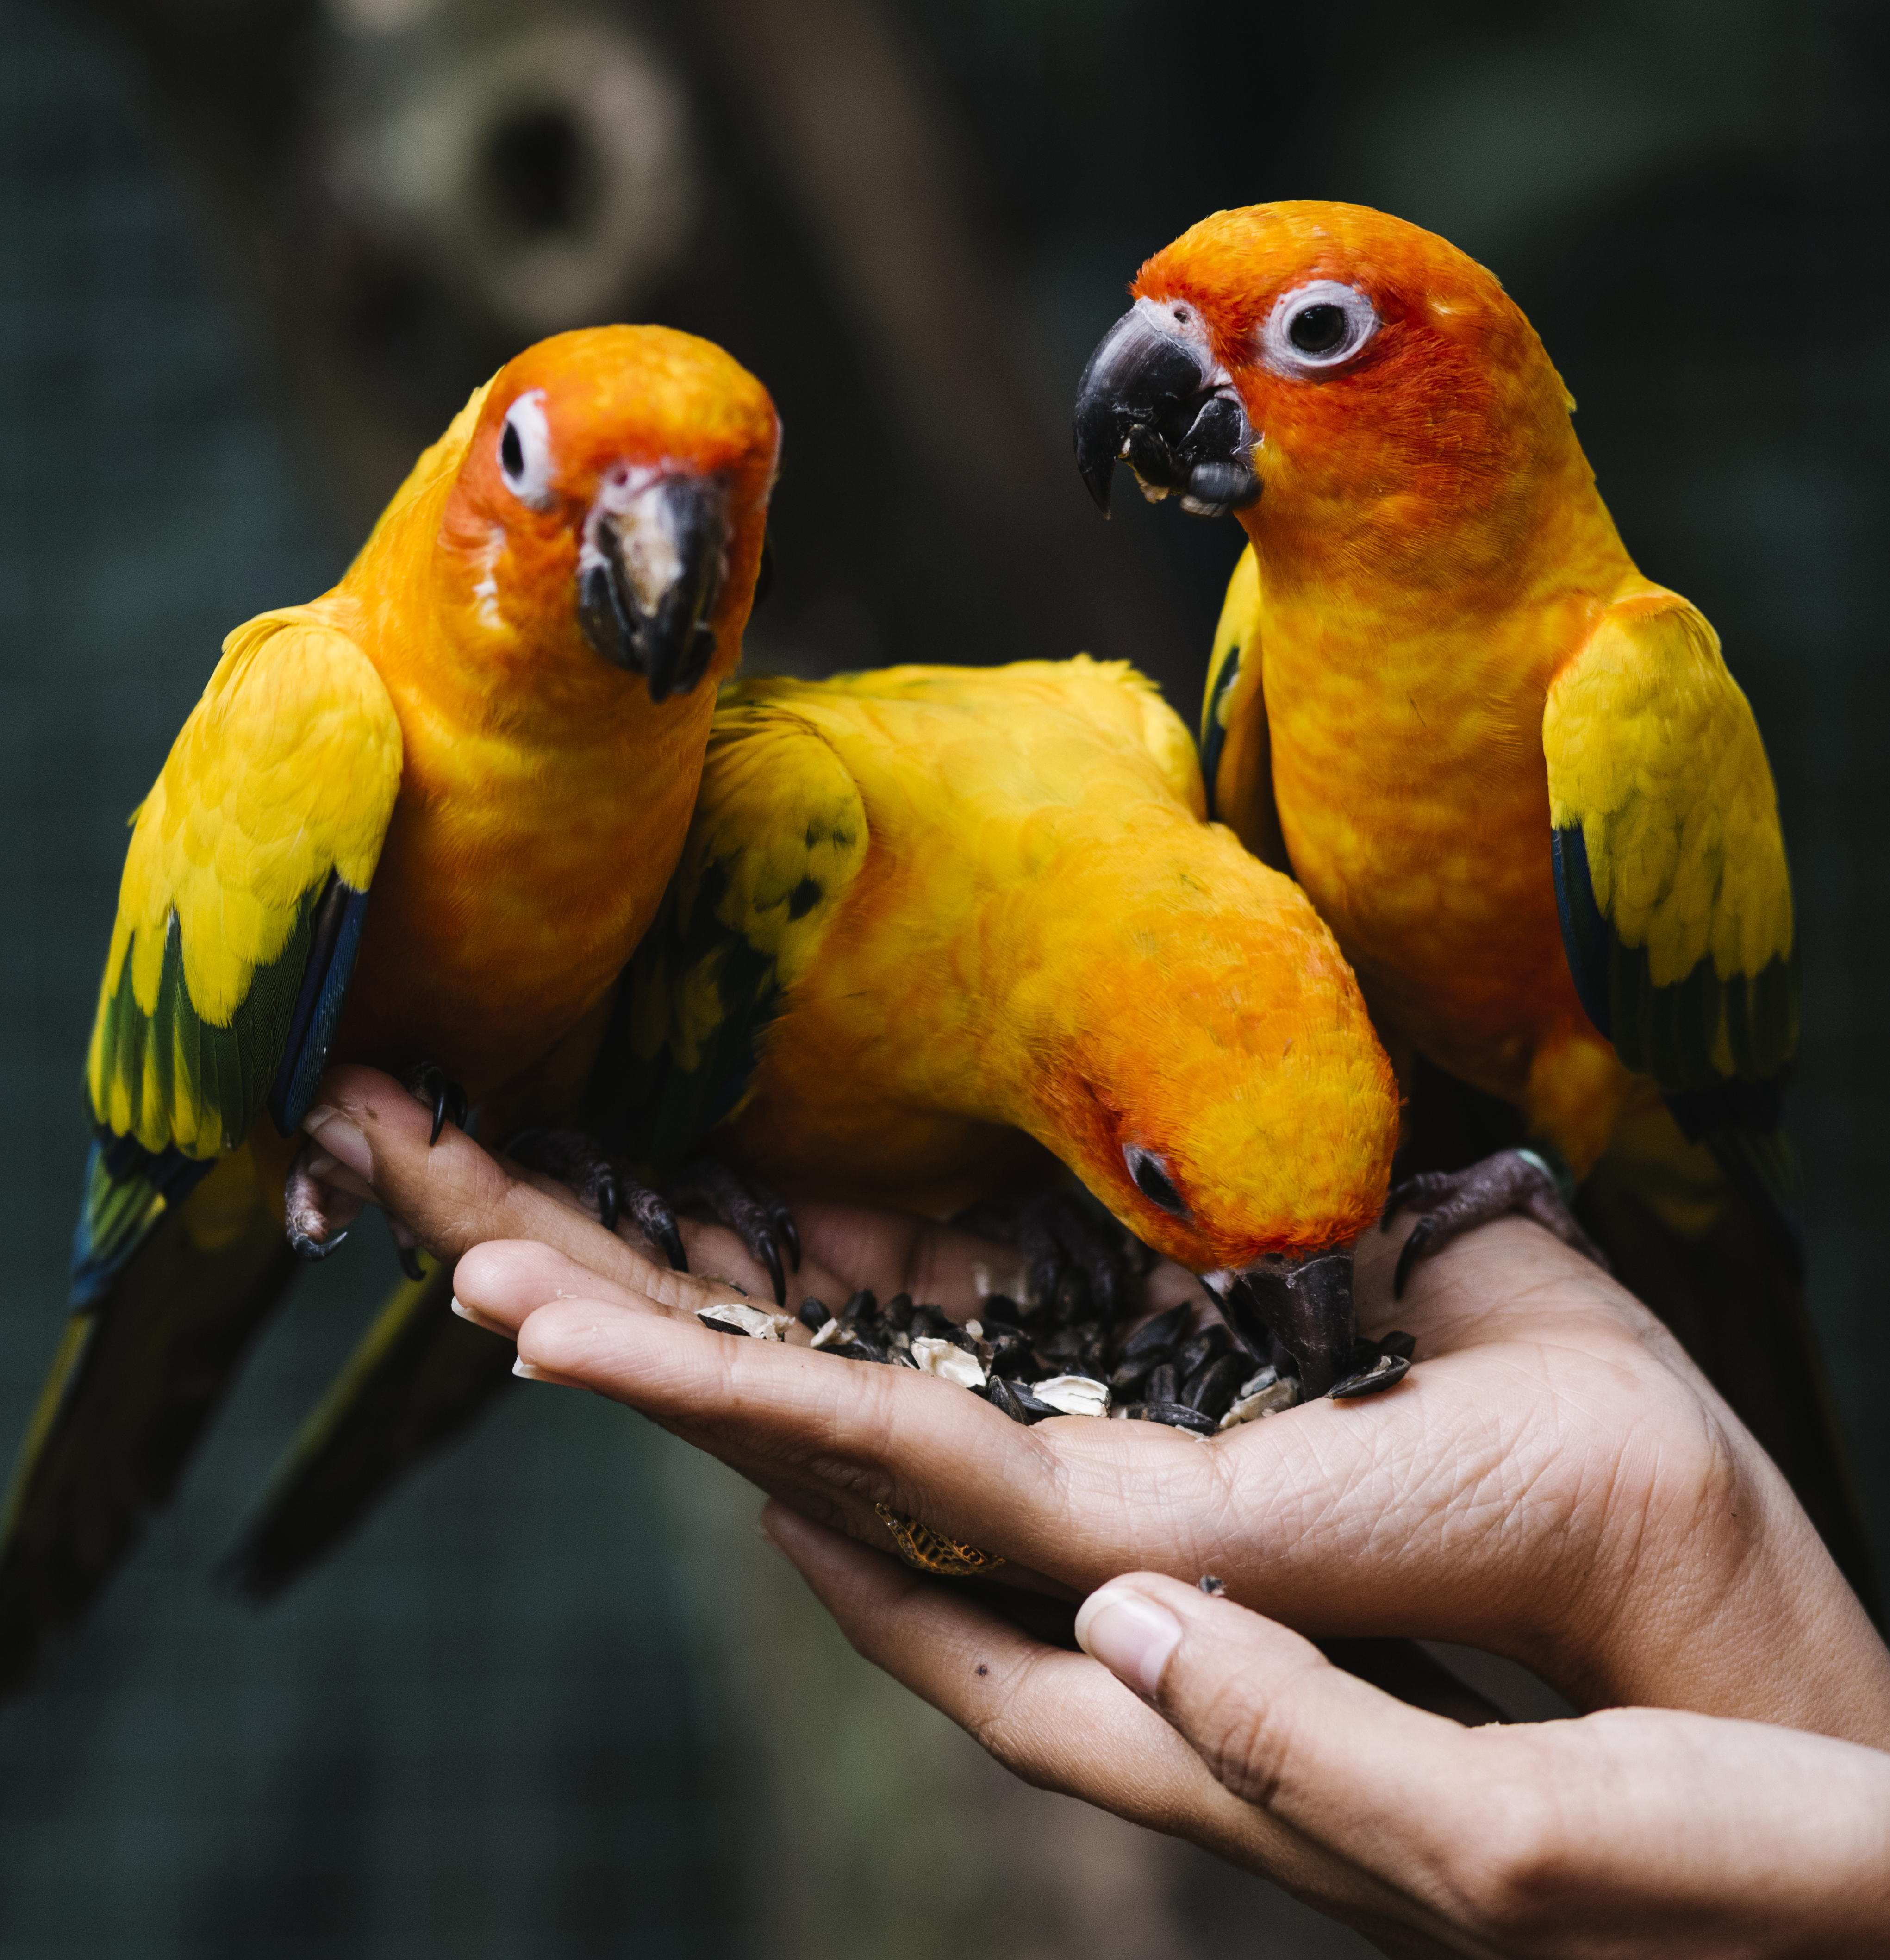 Parrots in a zoo